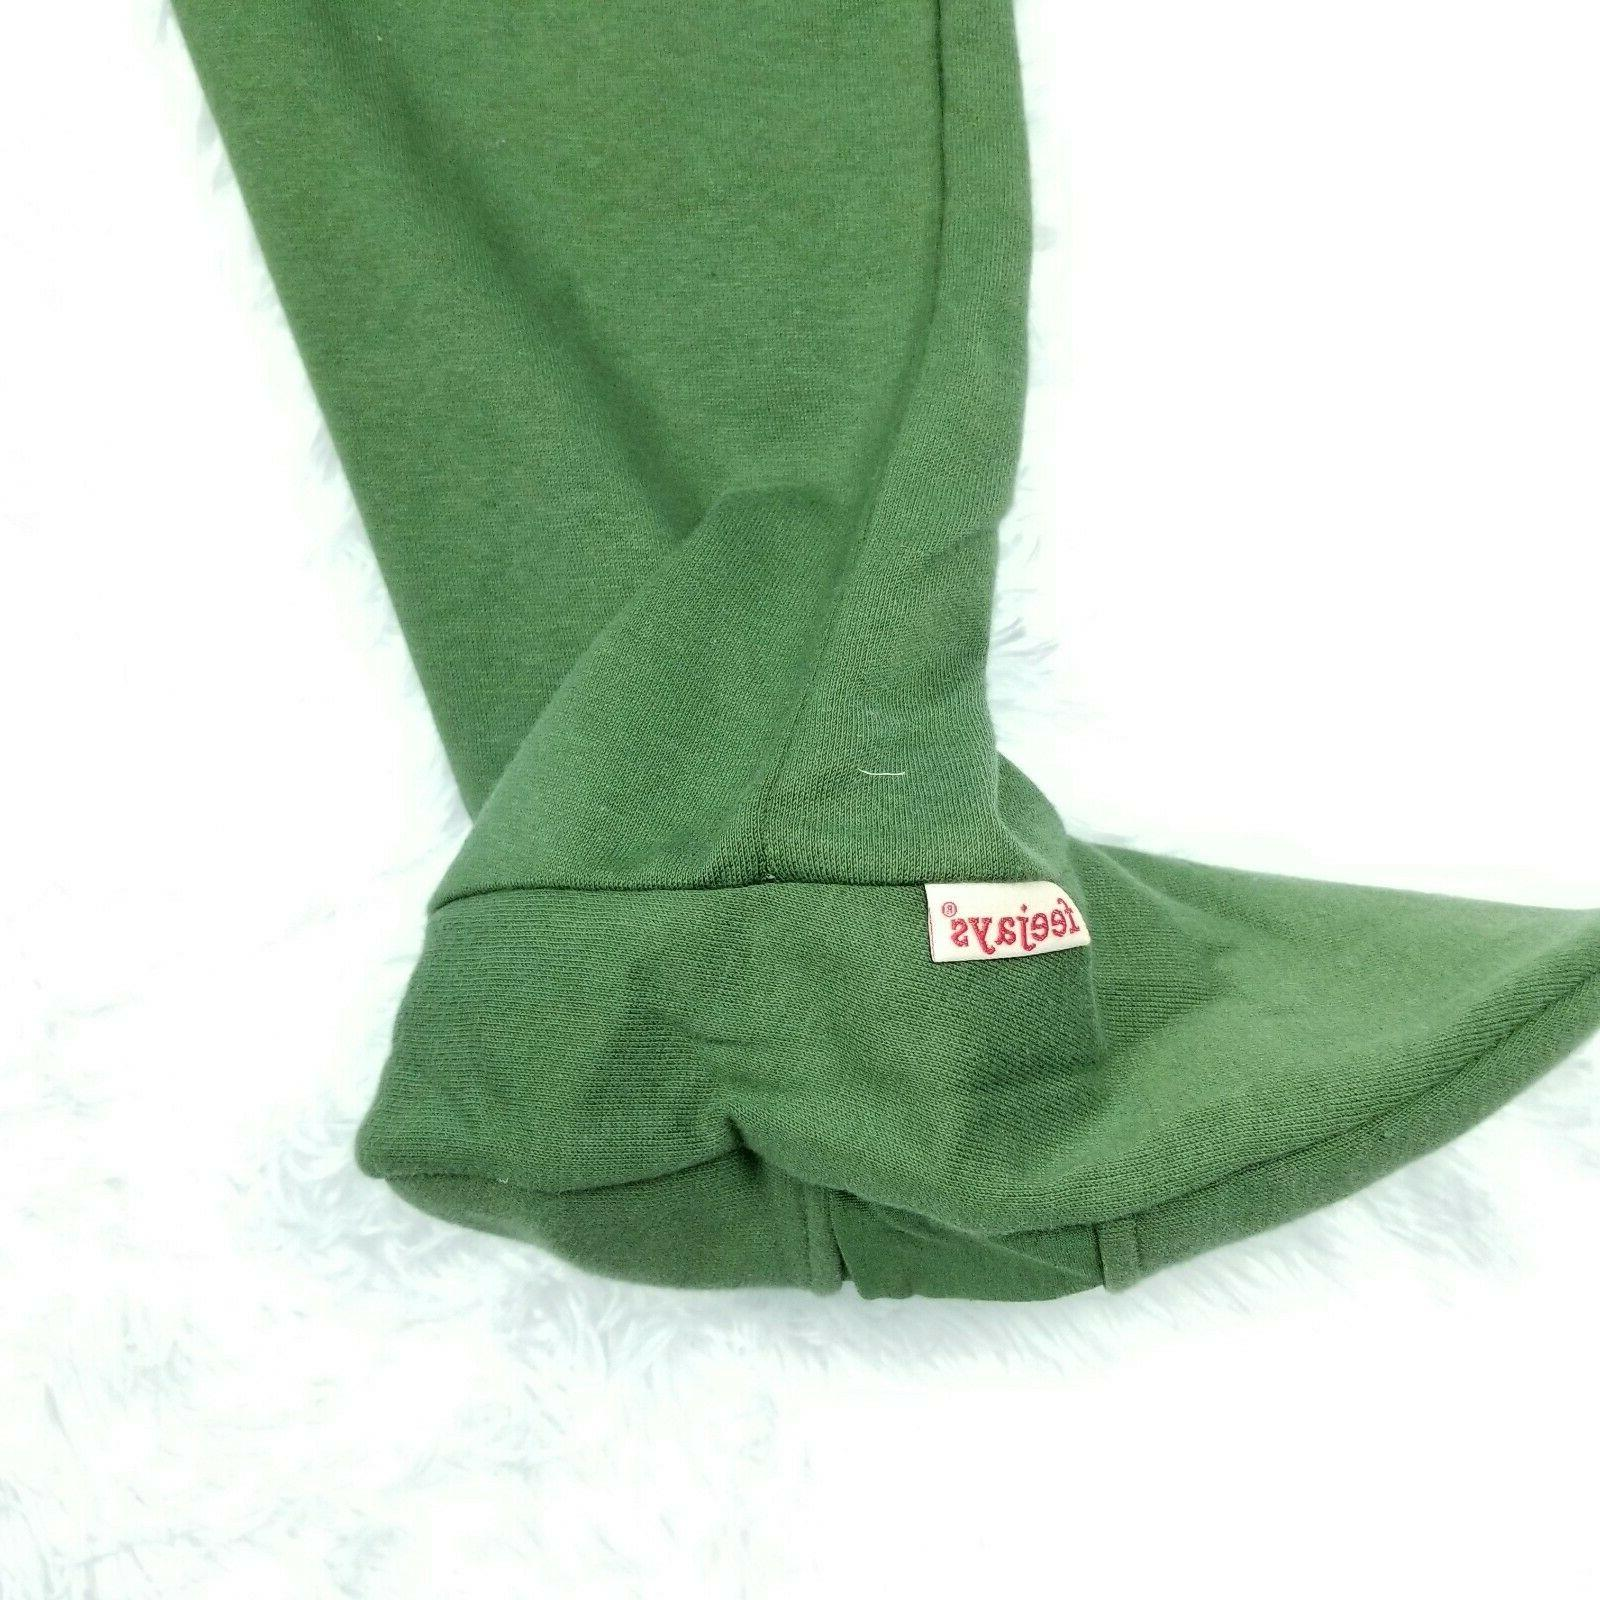 Feejays Sweatpants Adult Medium M Green